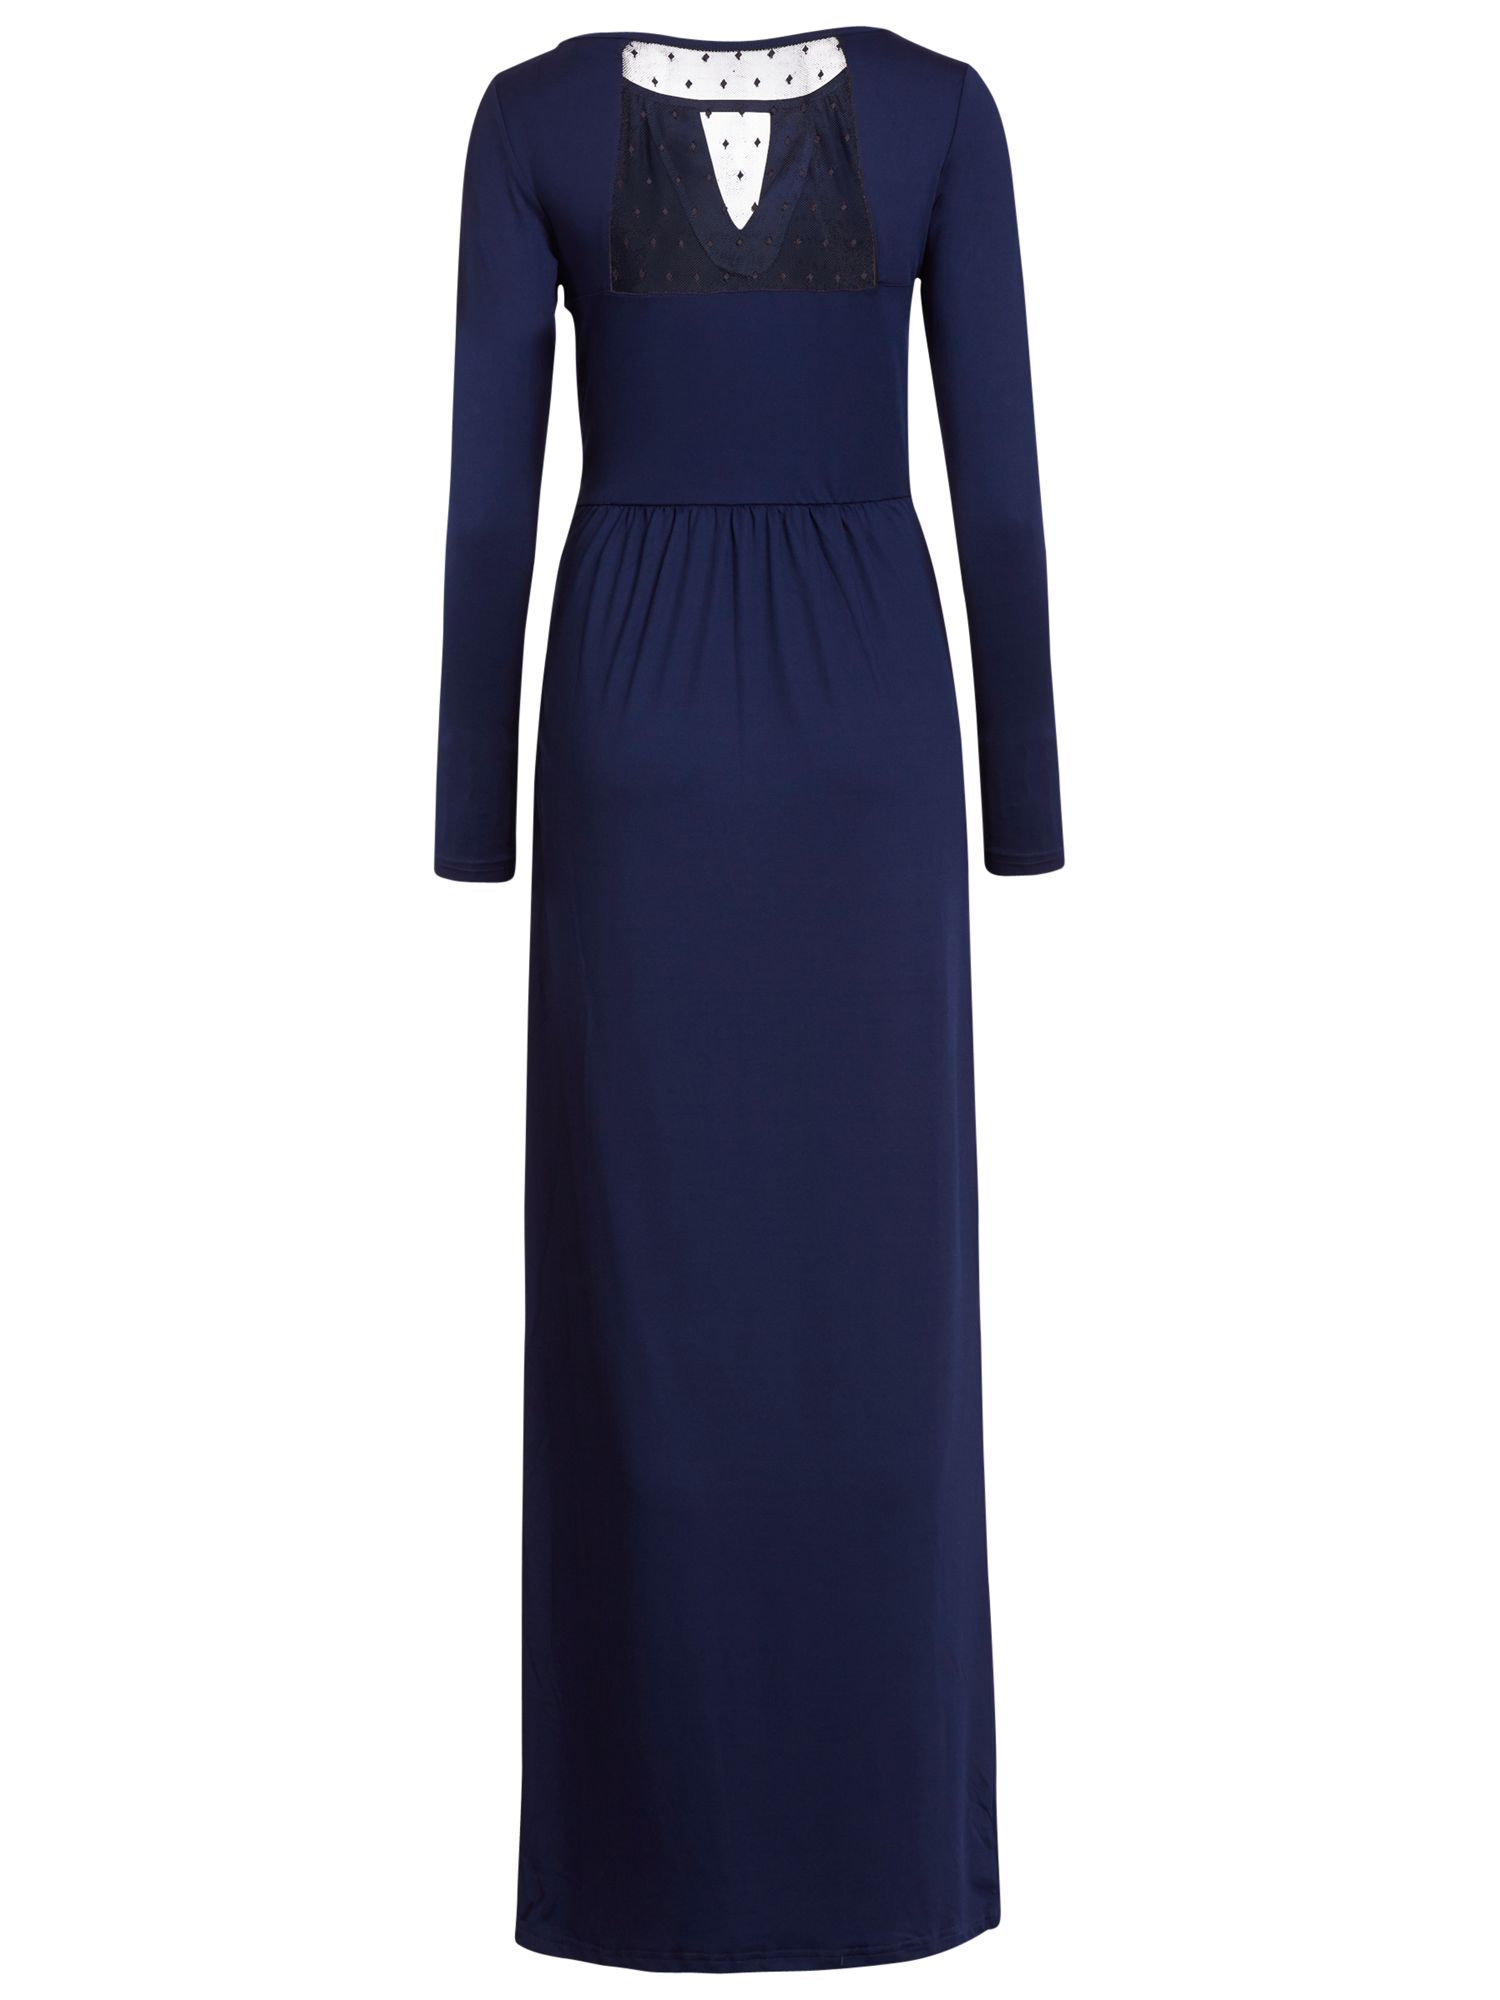 sugarhill boutique celine dress navy, sugarhill, boutique, celine, dress, navy, sugarhill boutique, 12|10|8, clearance, womenswear offers, womens dresses offers, new years party offers, women, womens dresses, party outfits, evening gowns, special offers, 1703740